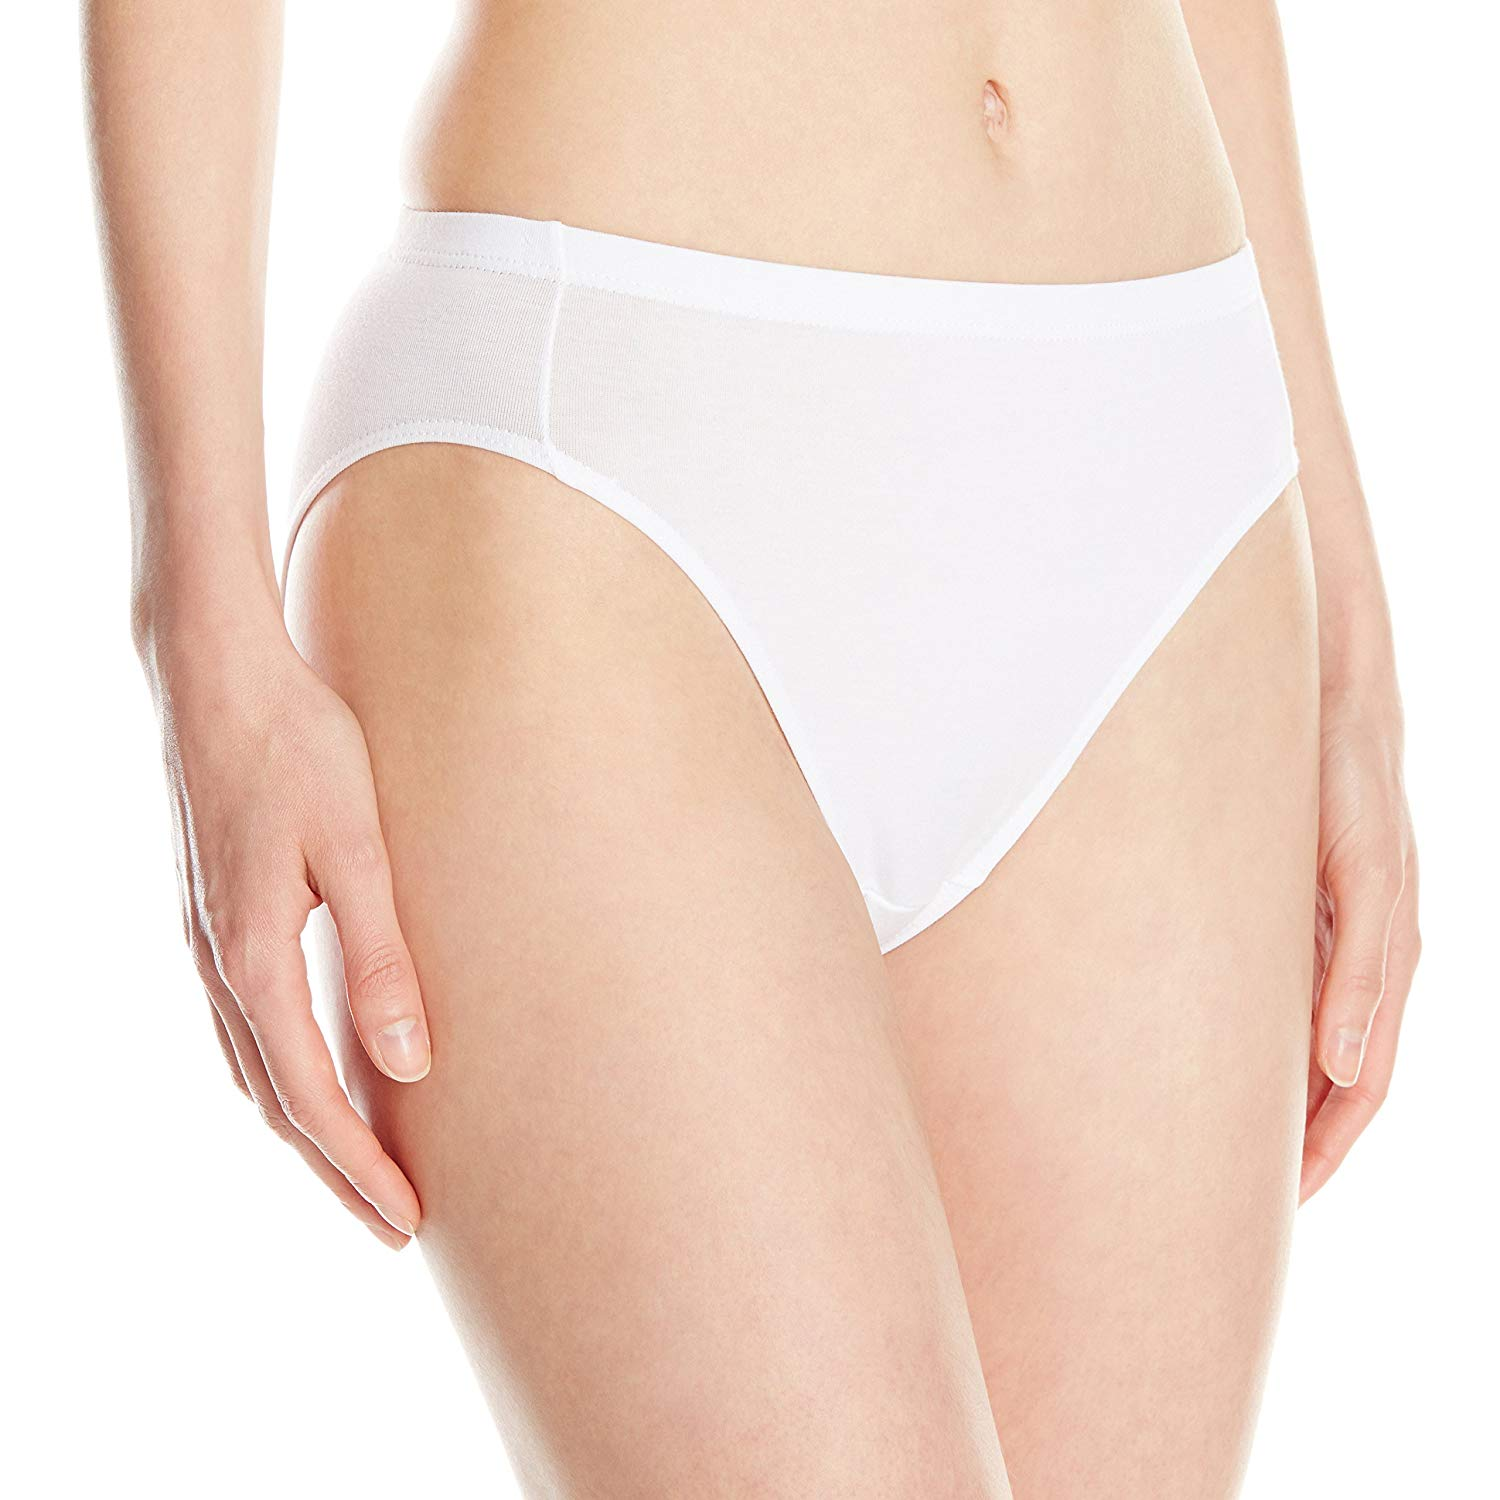 Elita The Essentials Cotton Hi-Cut Brief Panty (4040)